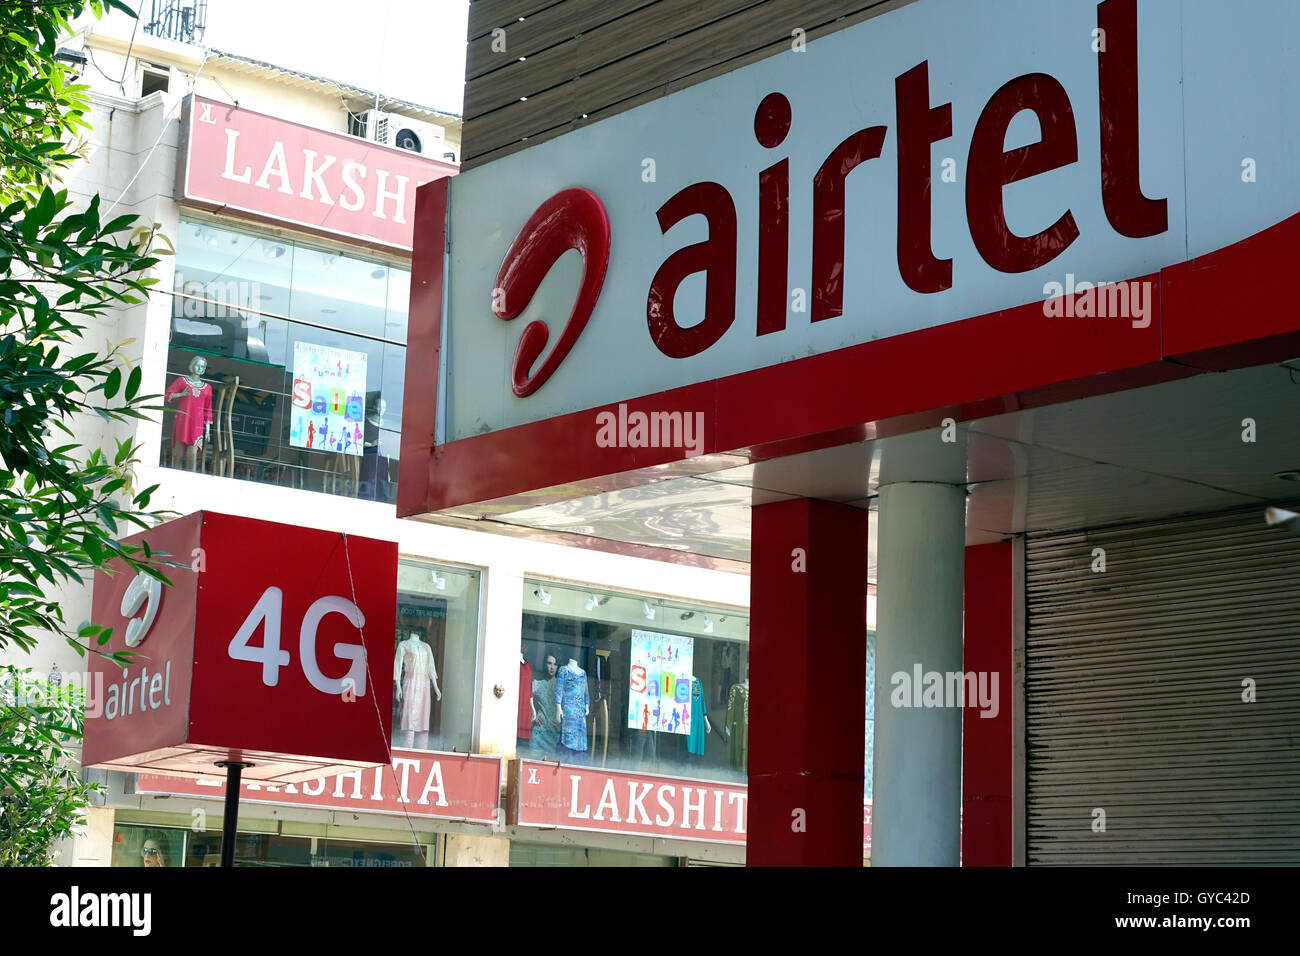 Airtel Mobile Phone Internet Net Connectivity 4G India Broadband Bandwidth shop-front market shop - Stock Image